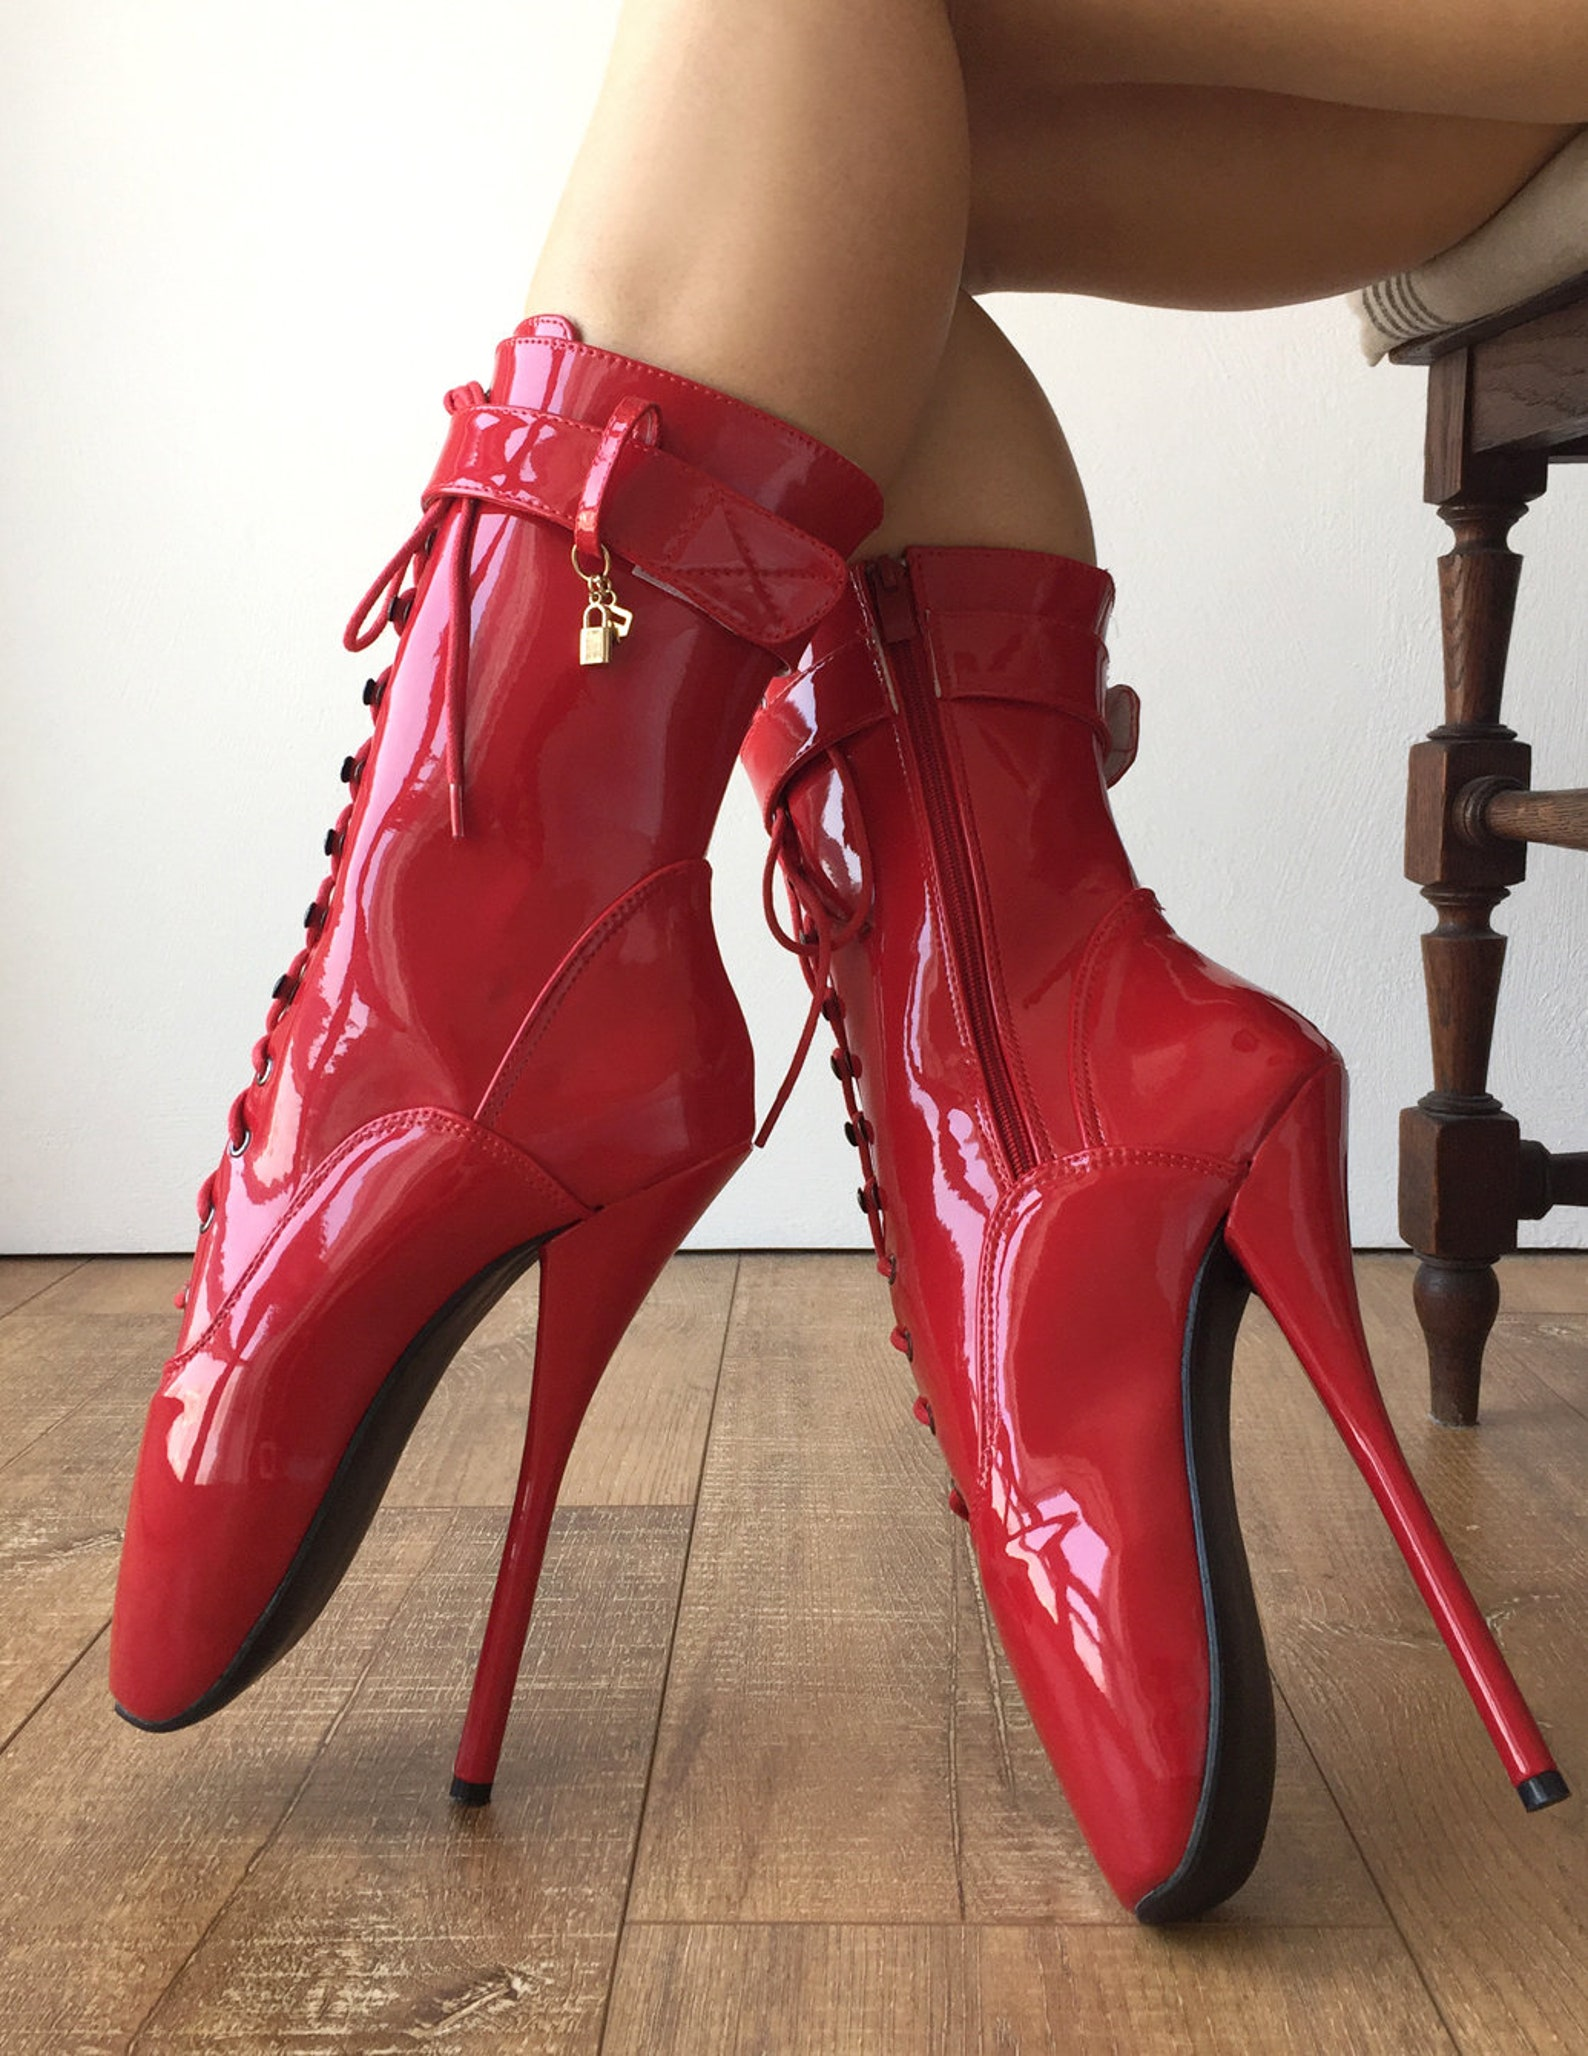 rtbu ballet calf hi fetish boot burlesque dominatrix red patent